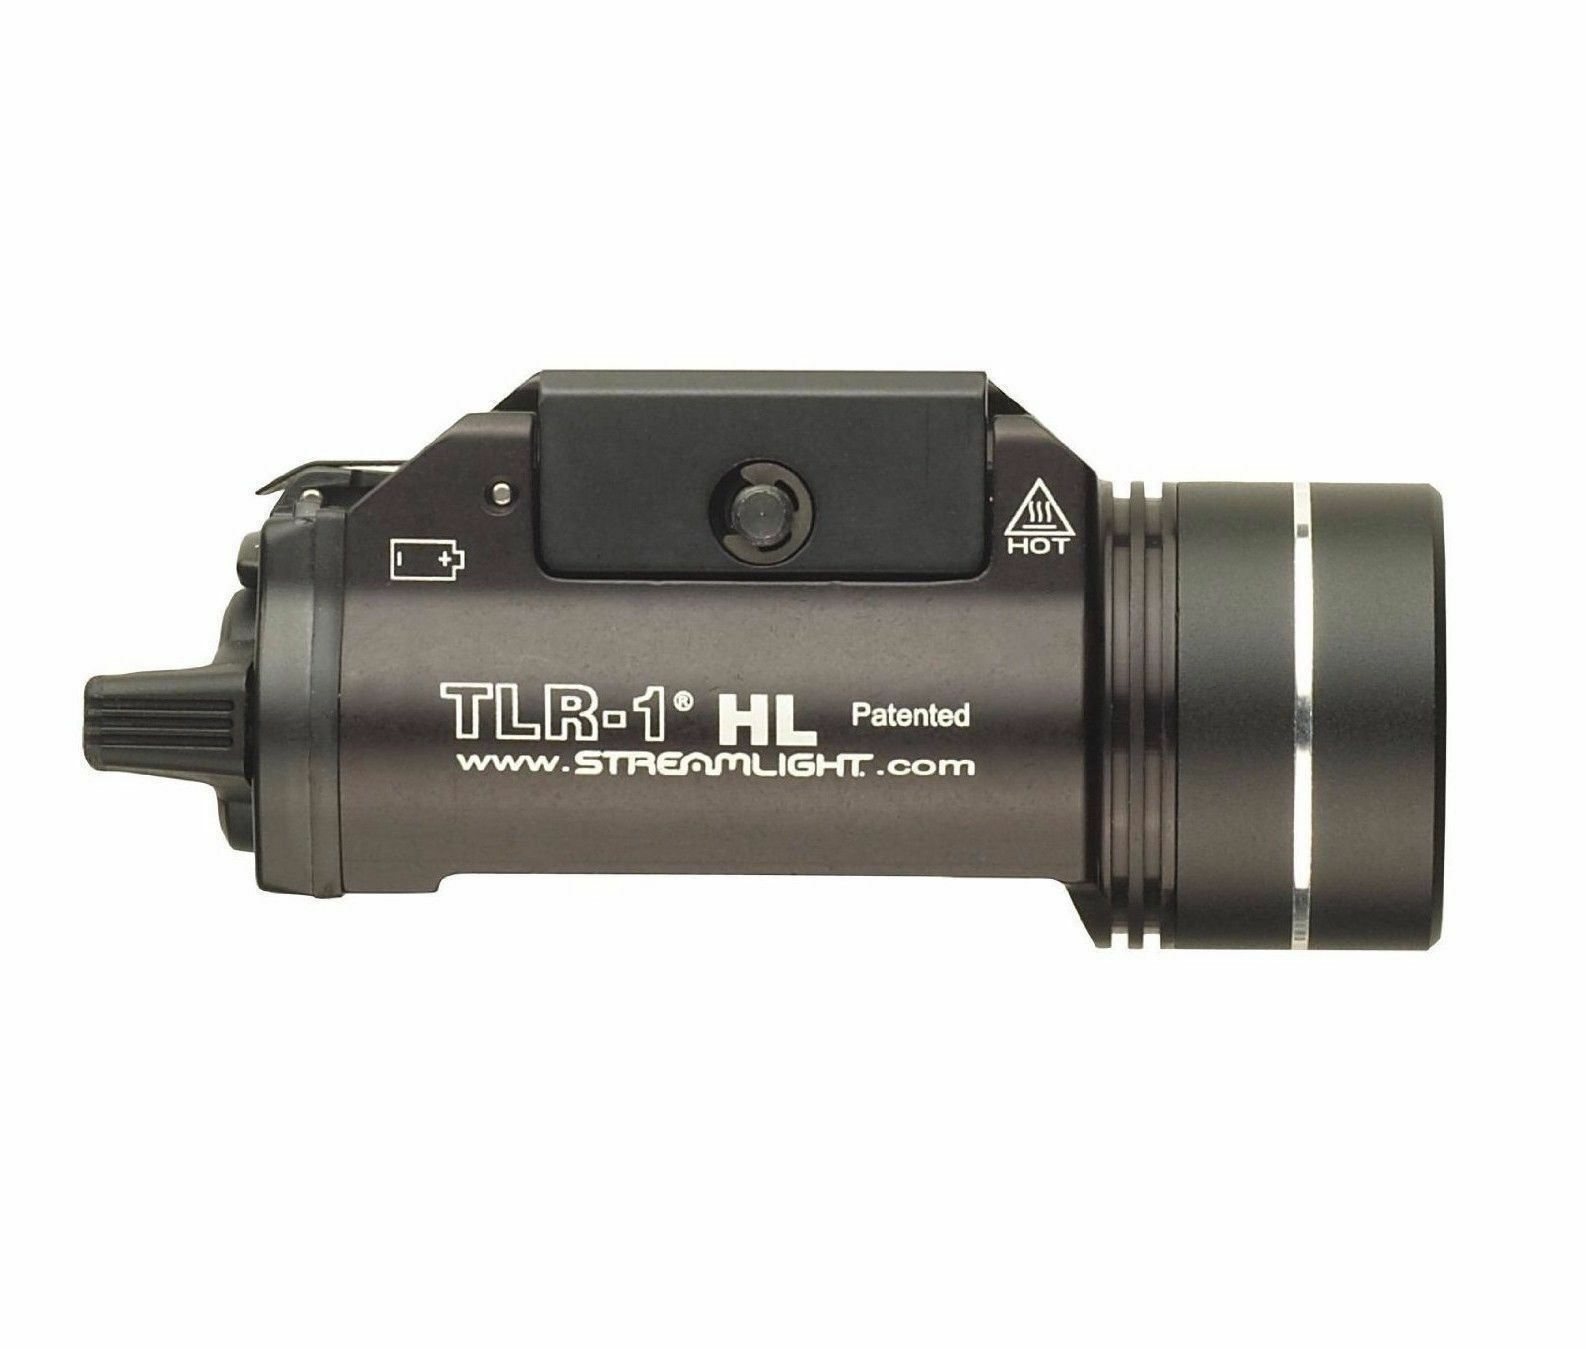 Streamlight Tlr-1 Hl 800 Lumens Tactical Led Light With Strobe Rail Mounts 69260